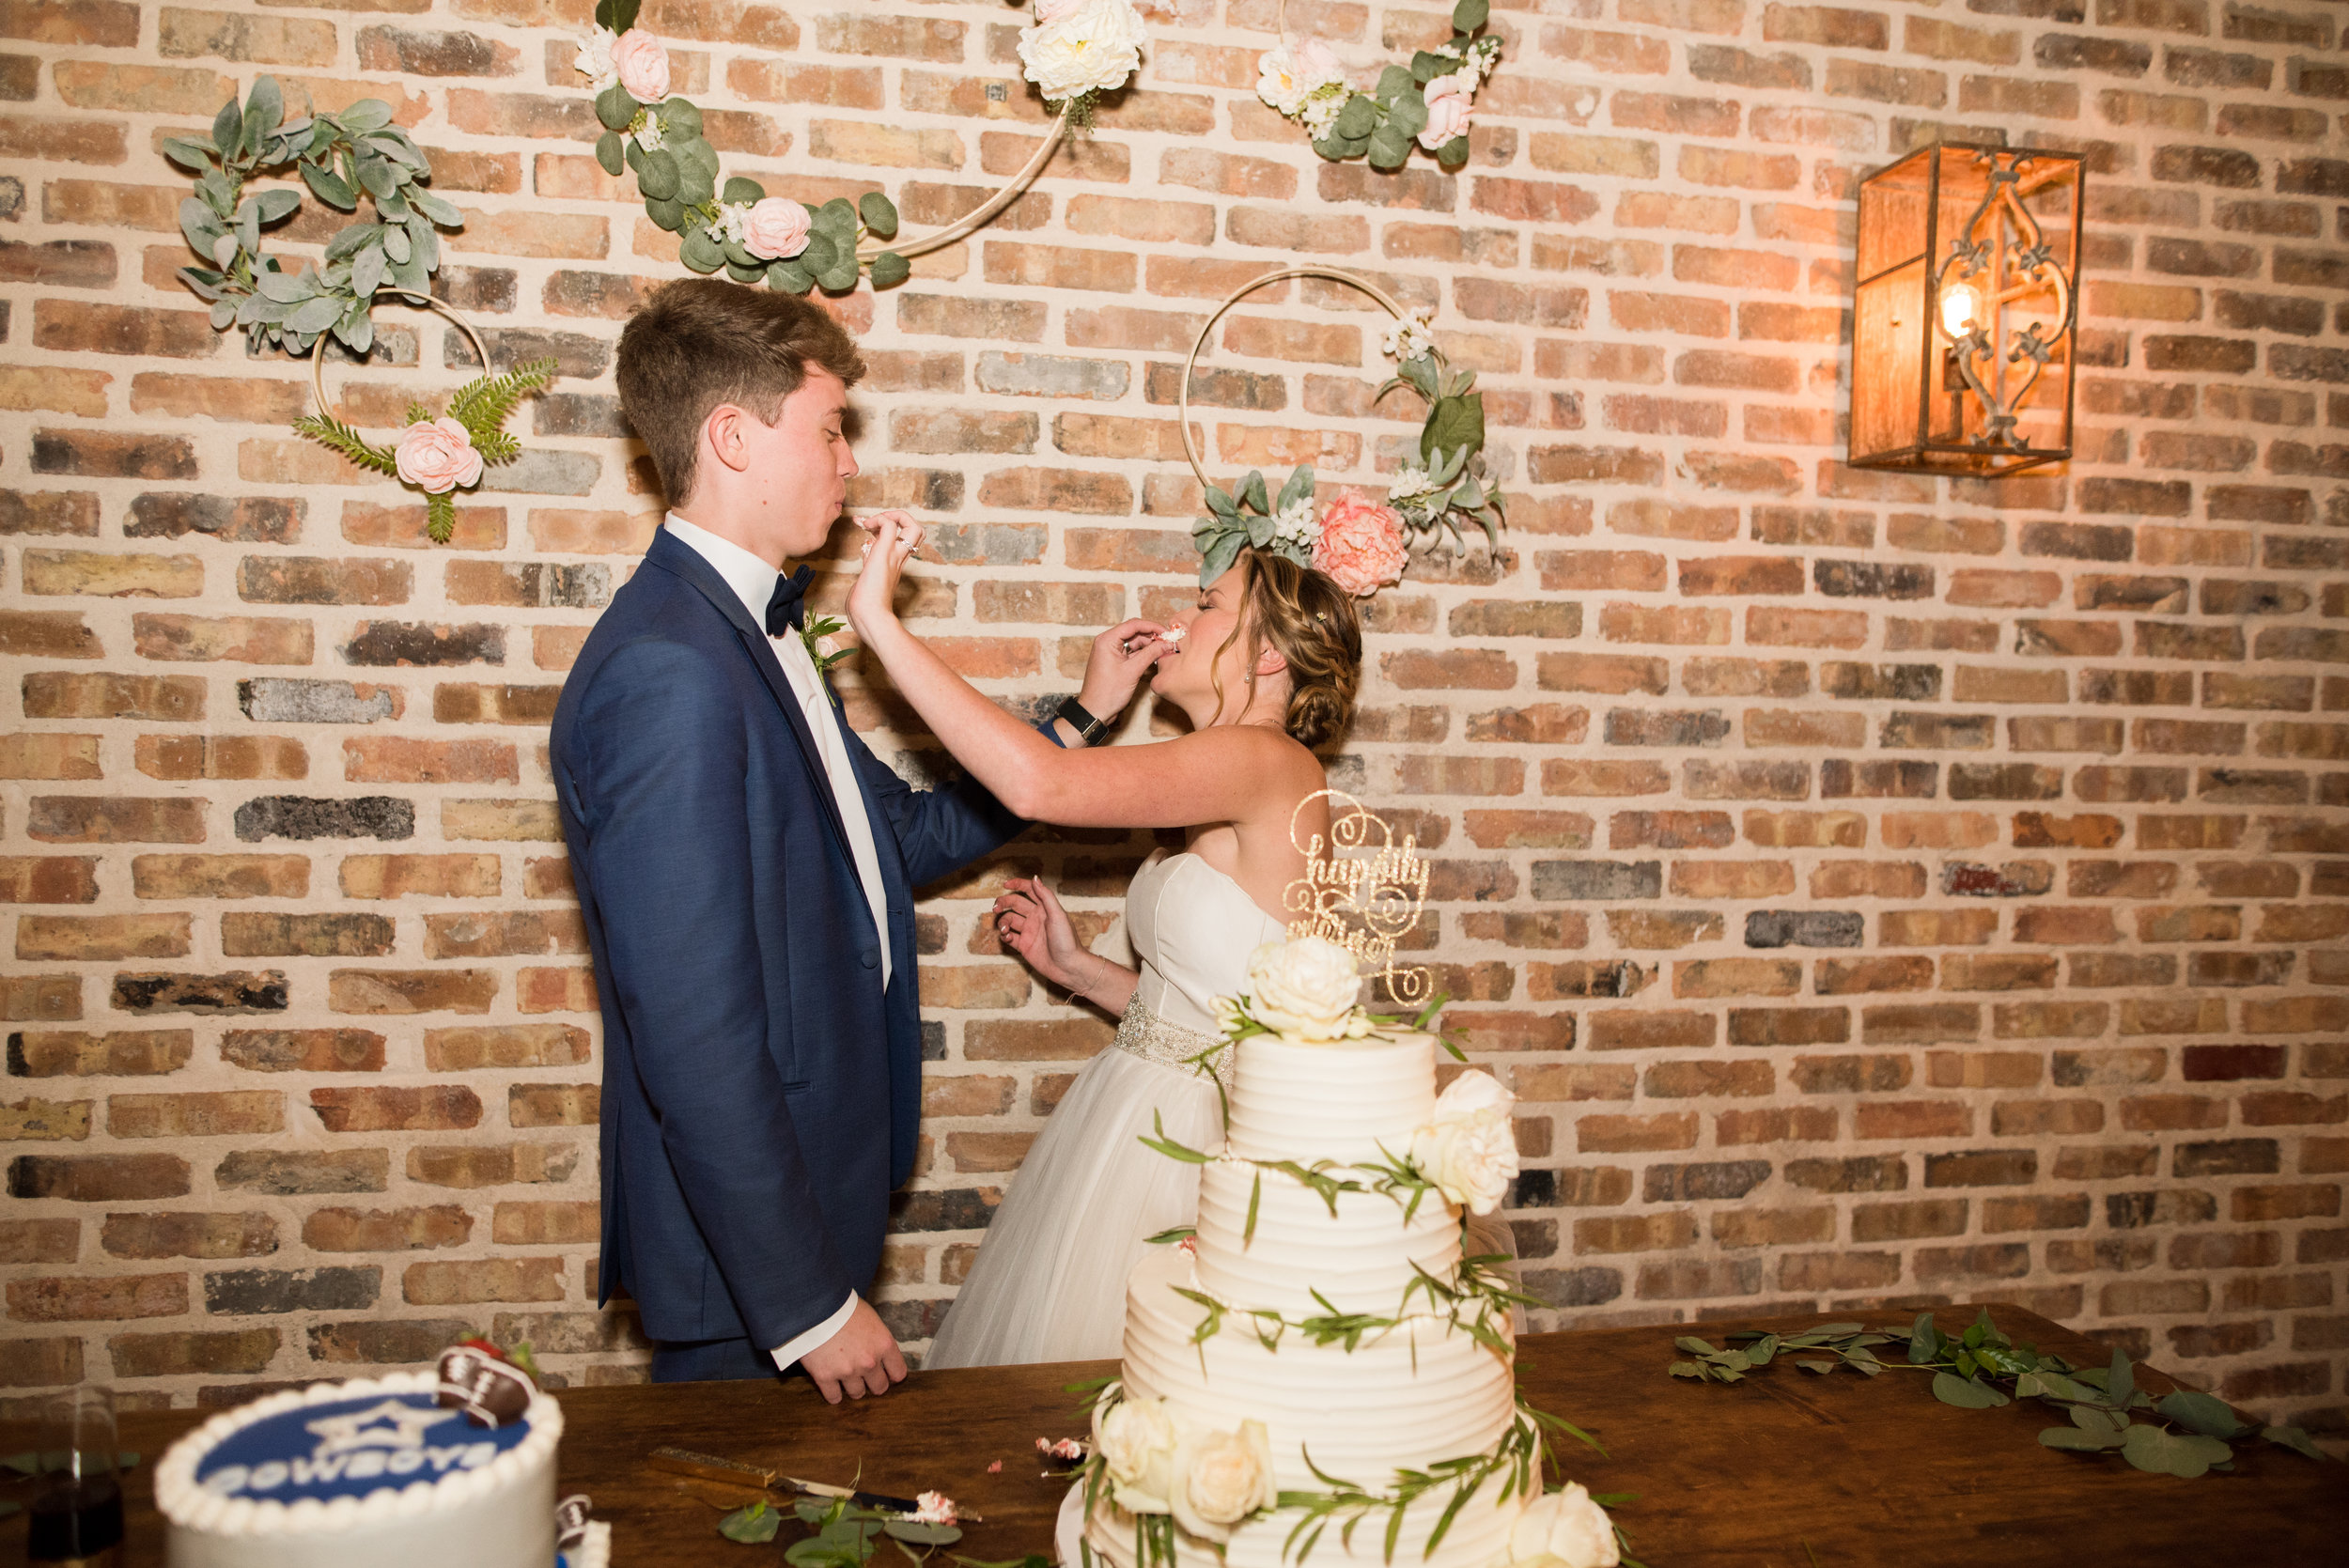 The Barn at Bridlewood wedding in Hattiesburg, Mississippi (MS) in June | Bride and Groom Wedding Cake Cutting, cake smashed in faces